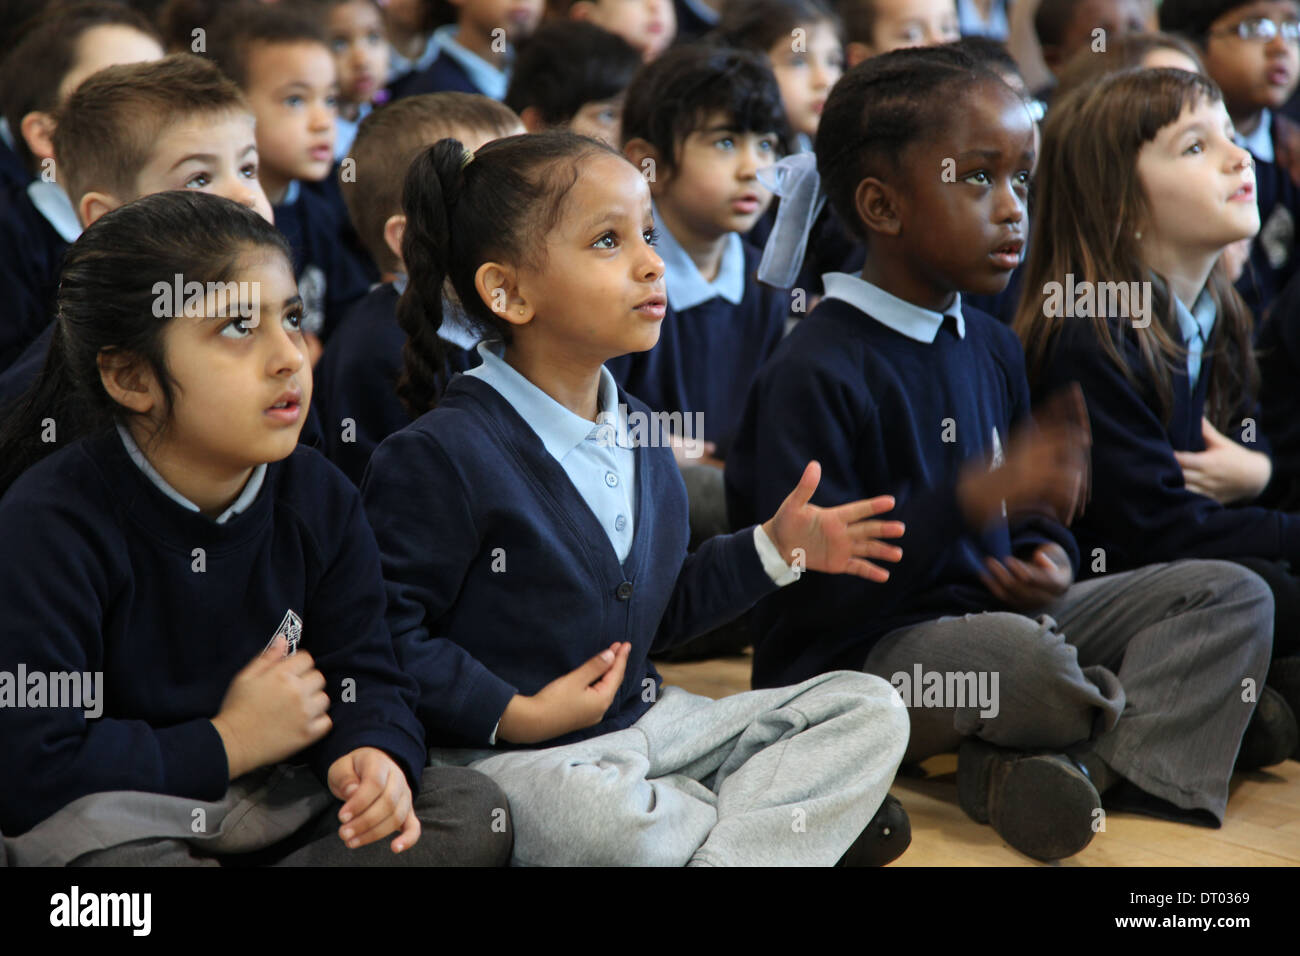 Children at a school assembly singing, clapping and performing actions - Stock Image